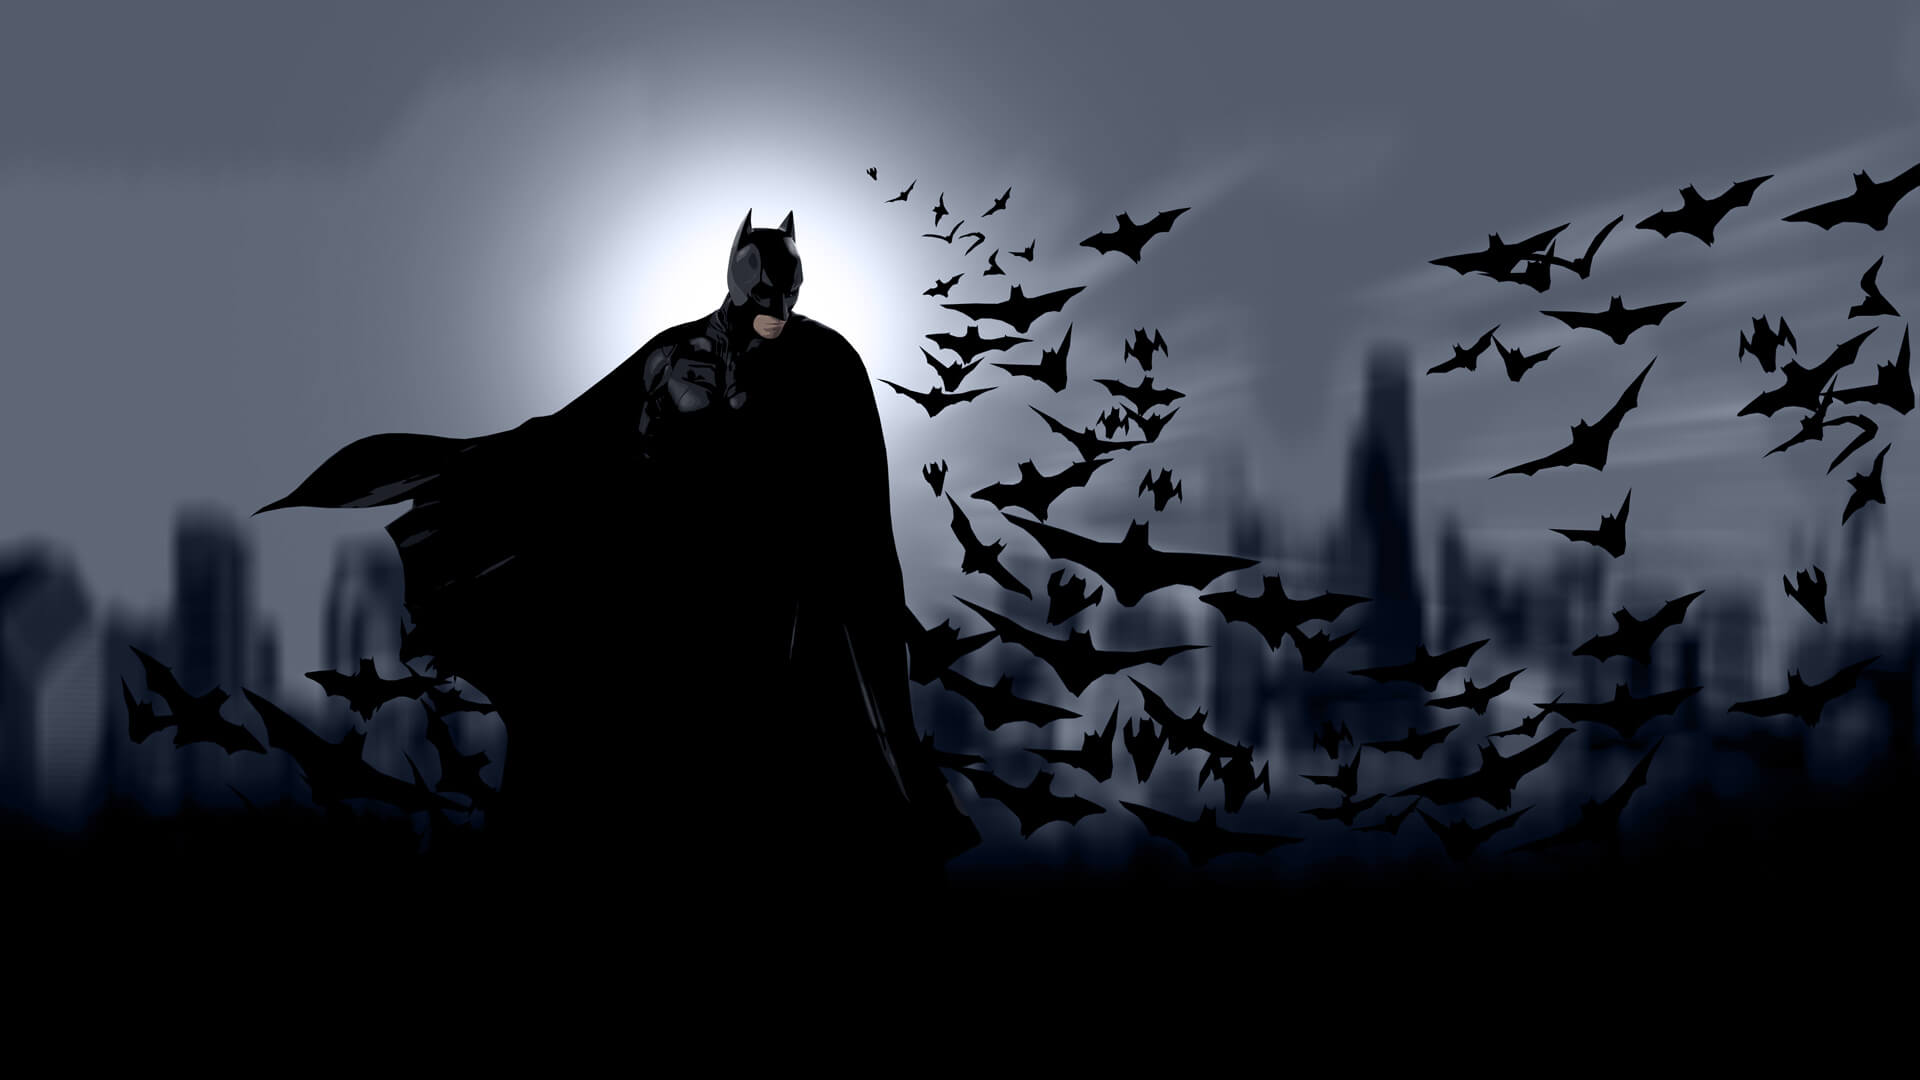 Collection Of Batman Hd Wallpapers For Desktop On HDWallpapers